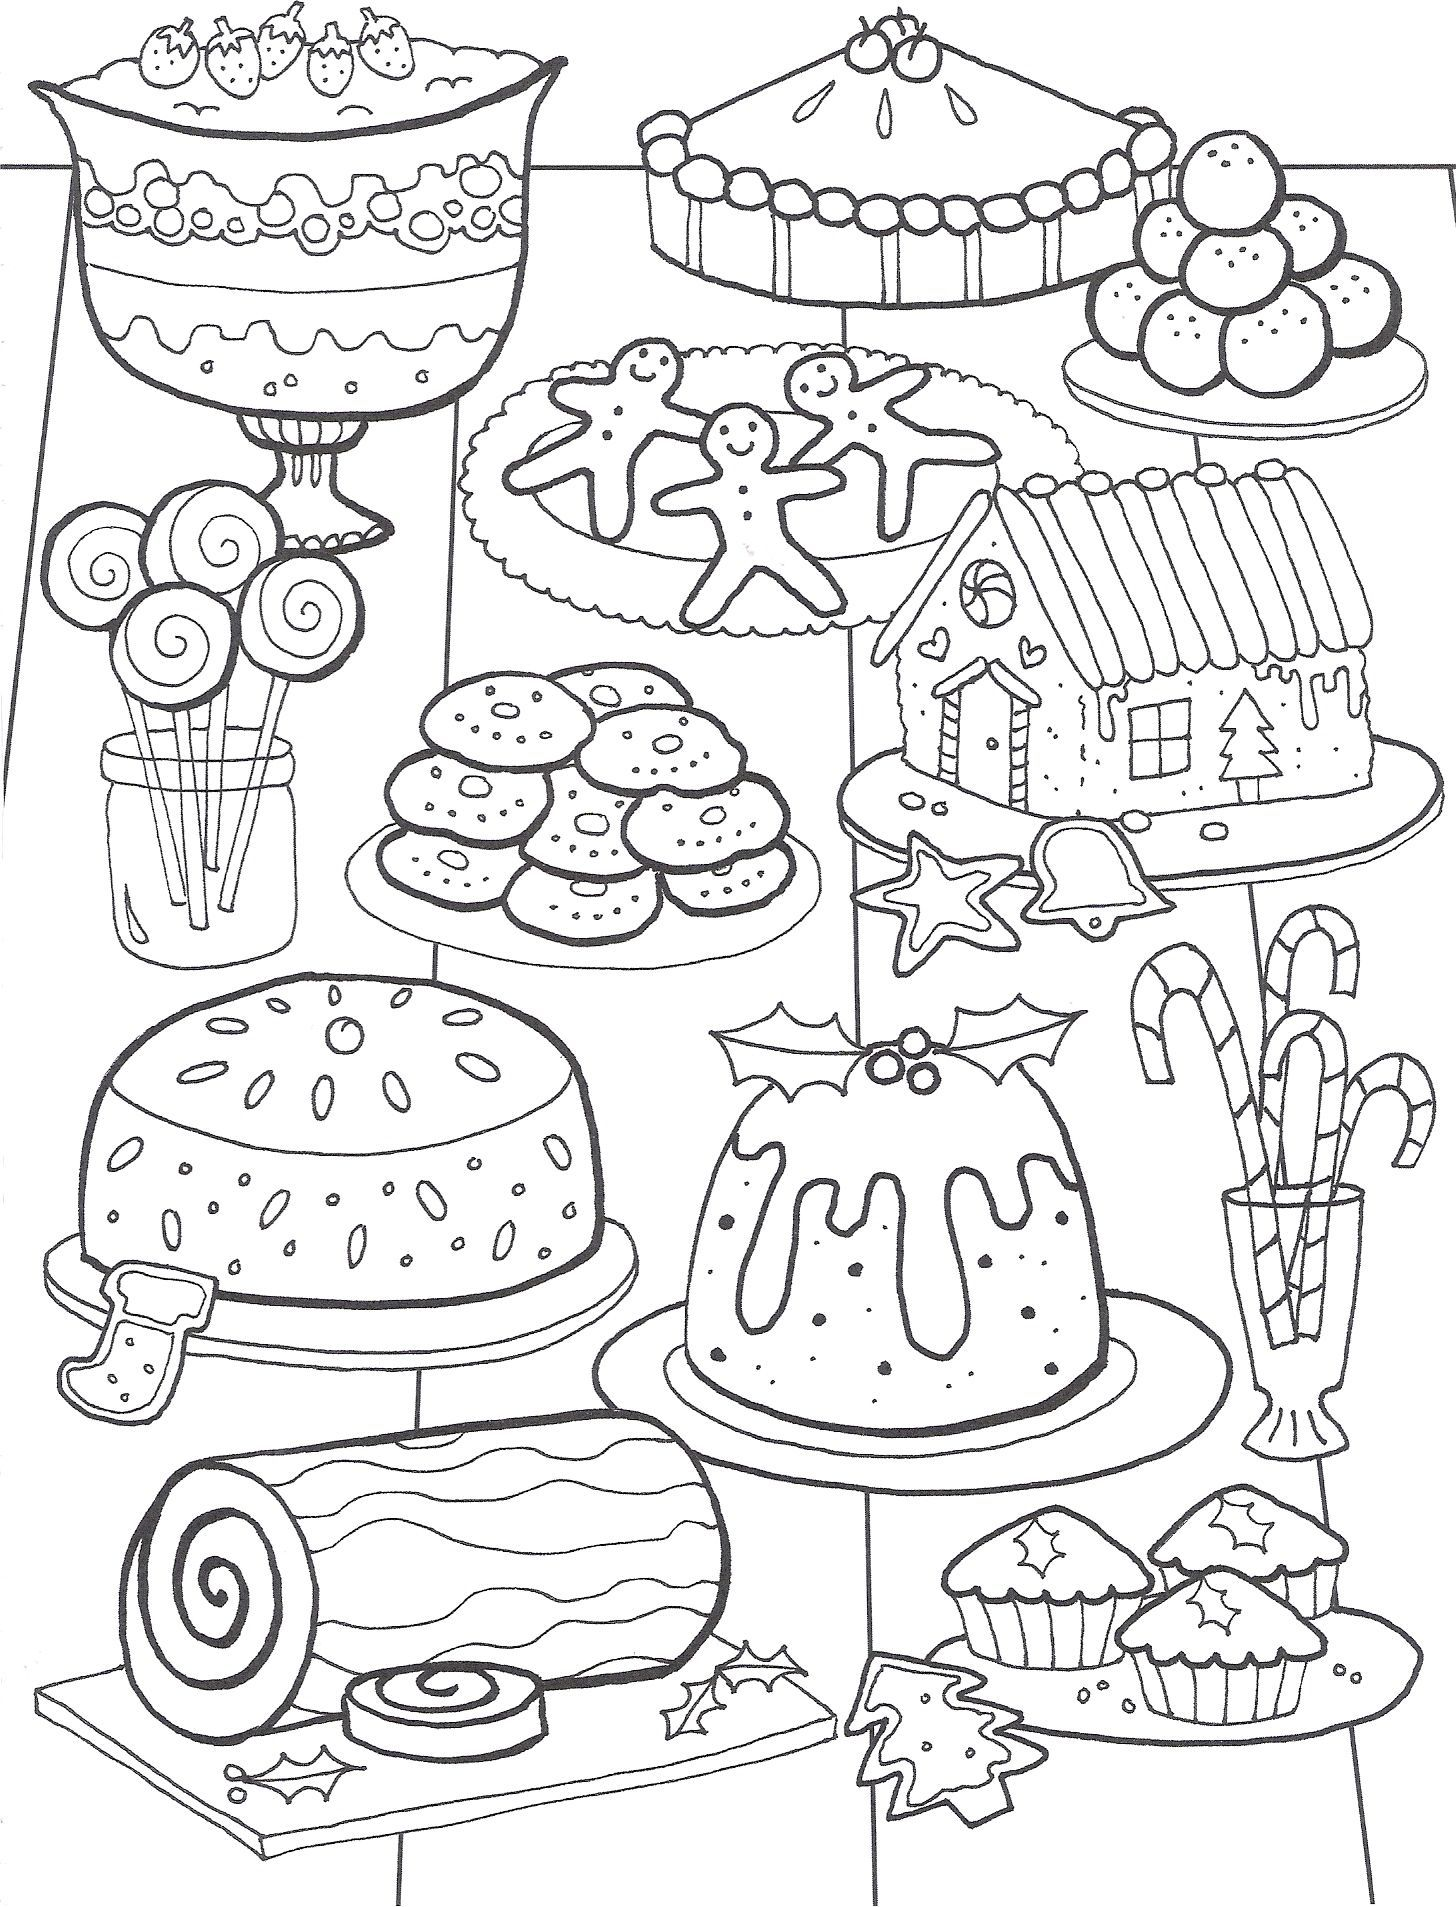 Pin By Tana Herrlein On Coloring Pages Food Stuffs Food Food Coloring Pages Cool Coloring Pages Candy Coloring Pages